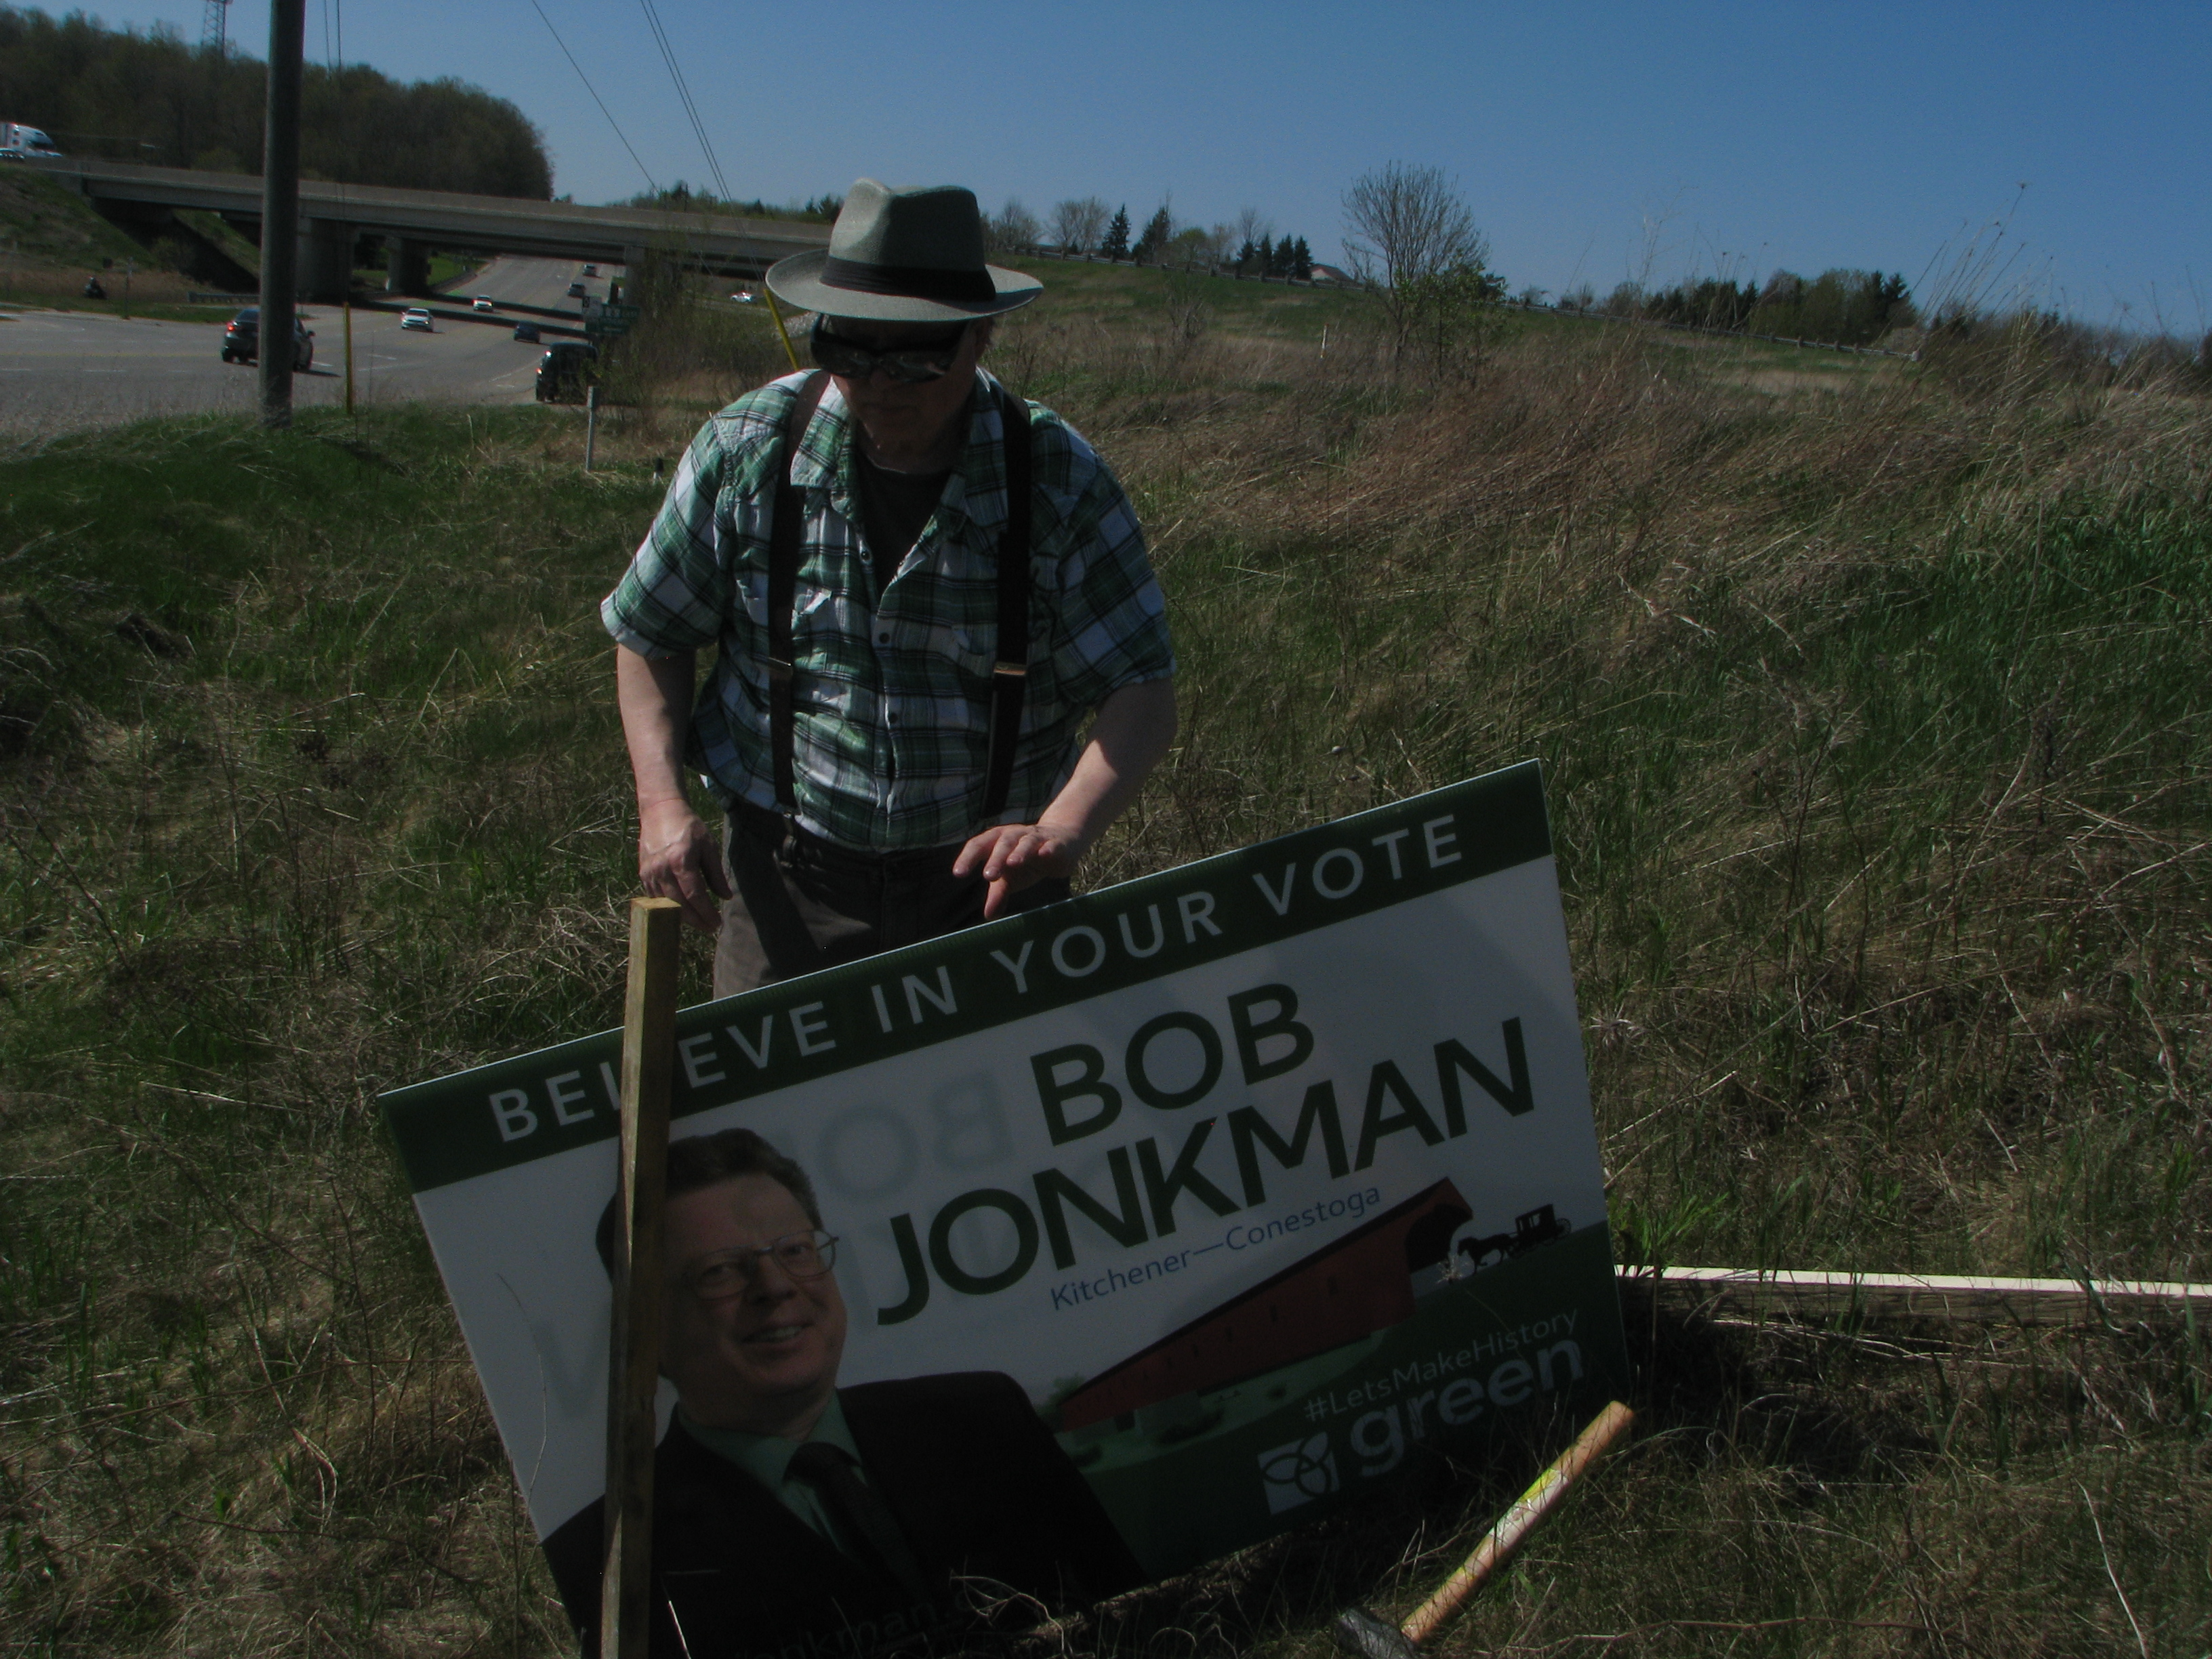 Bob Jonkman puts up an election sign